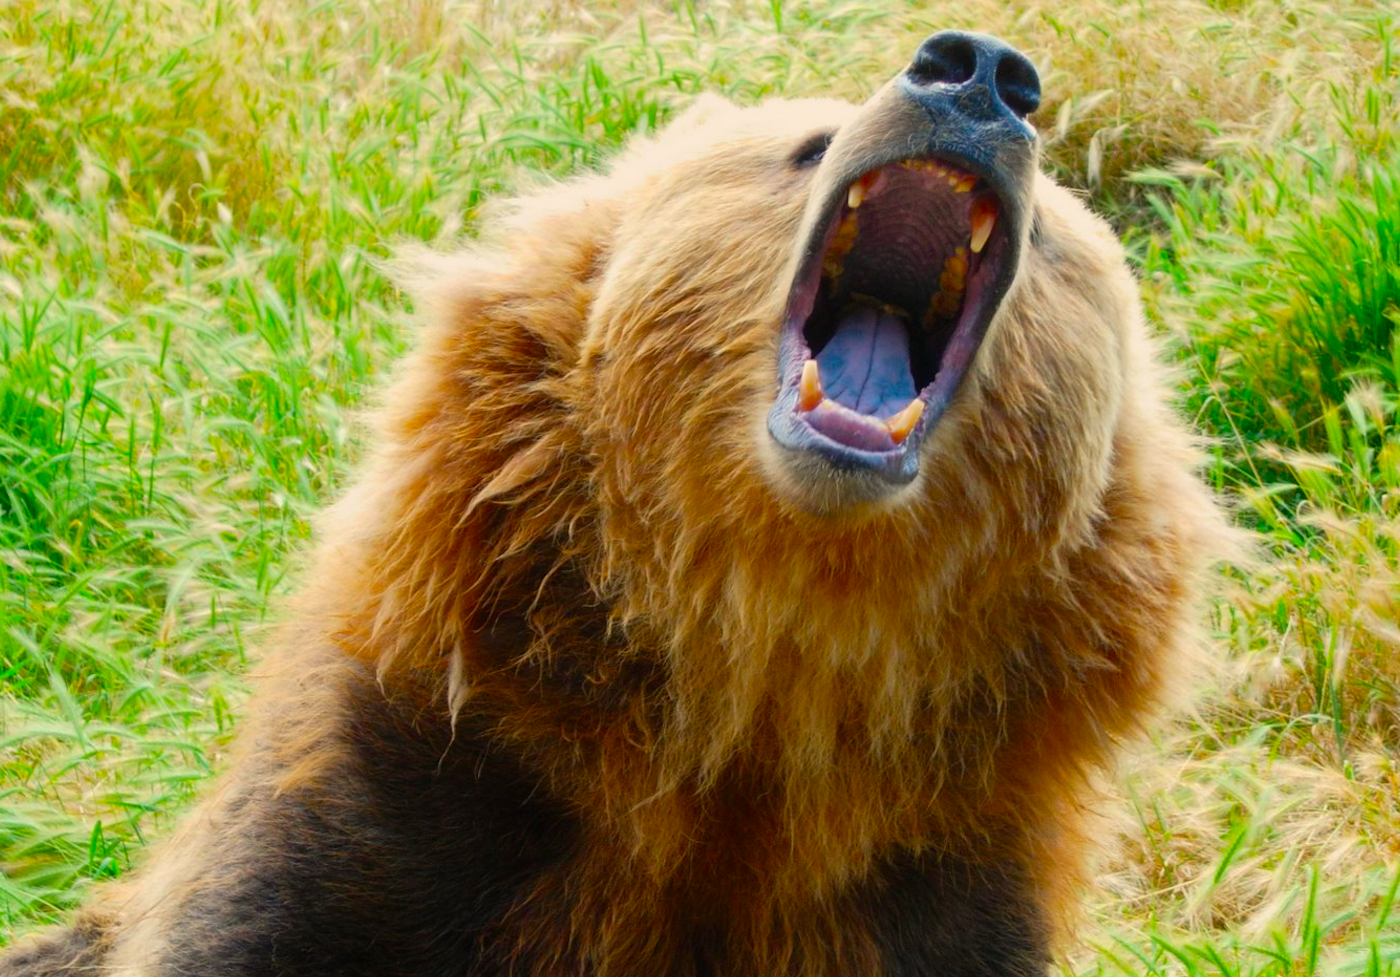 Morgan Stanley: 'We are in a bear market'